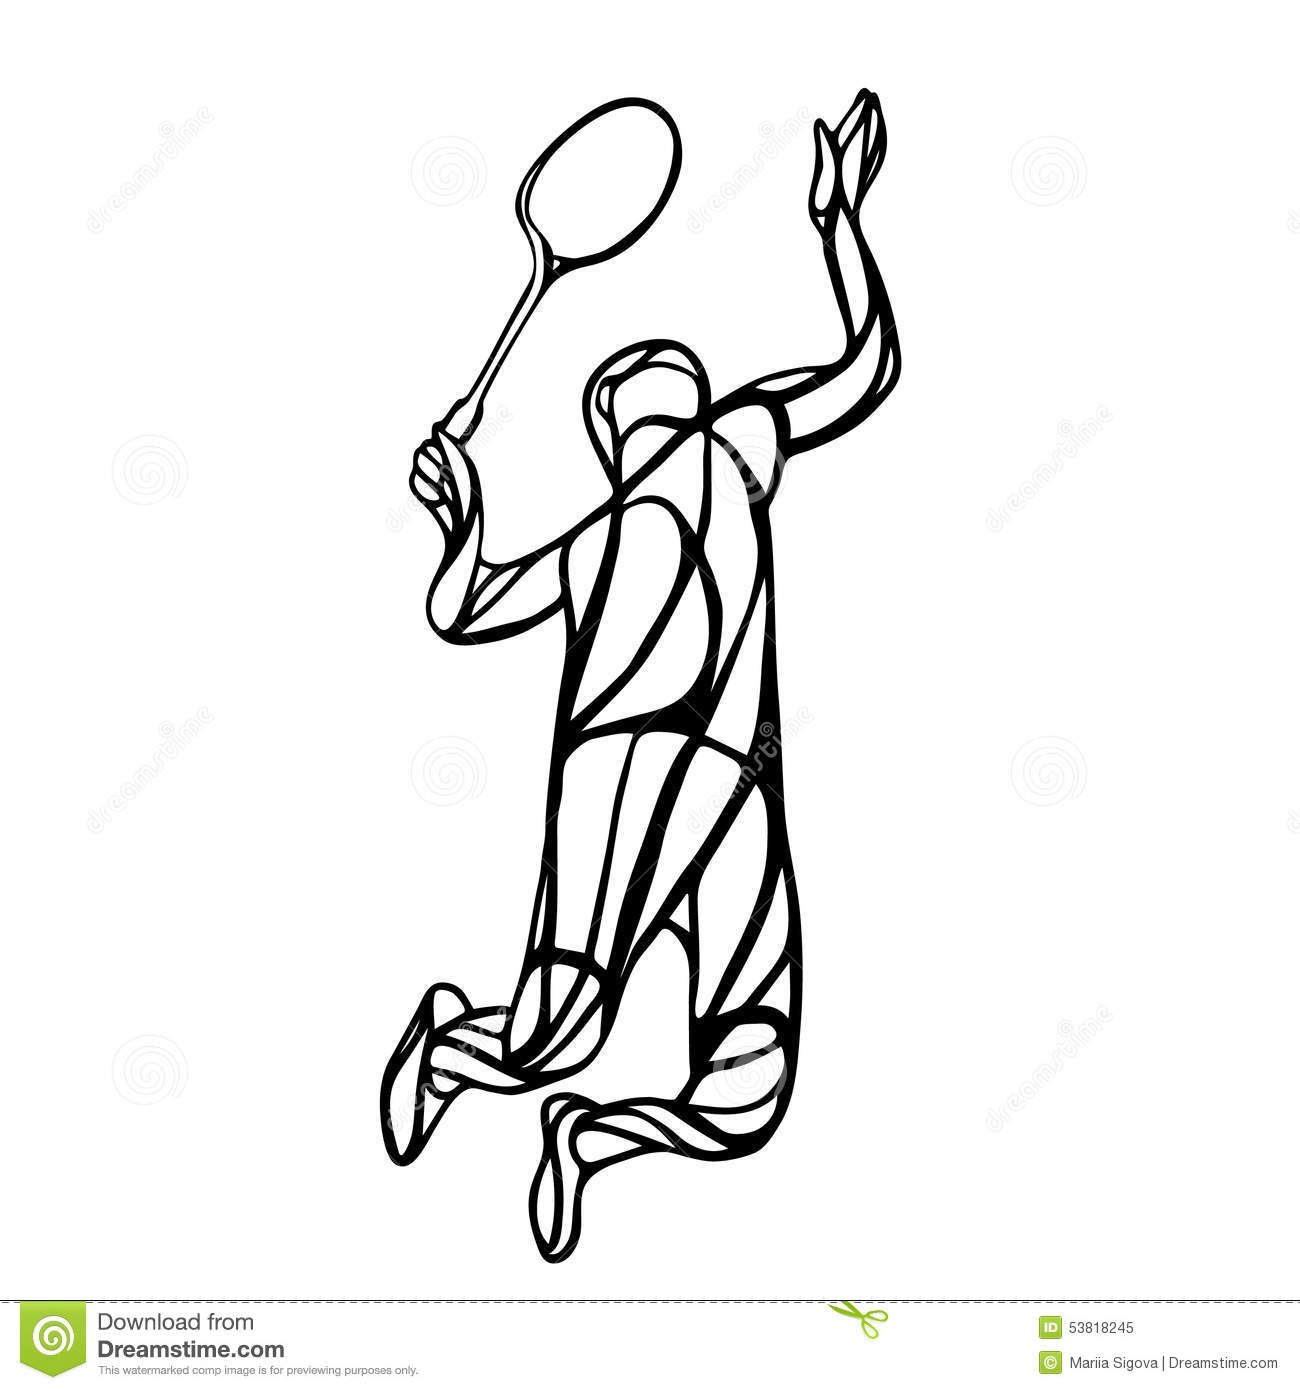 Creative Silhouette Of Abstract Badminton Player Stock